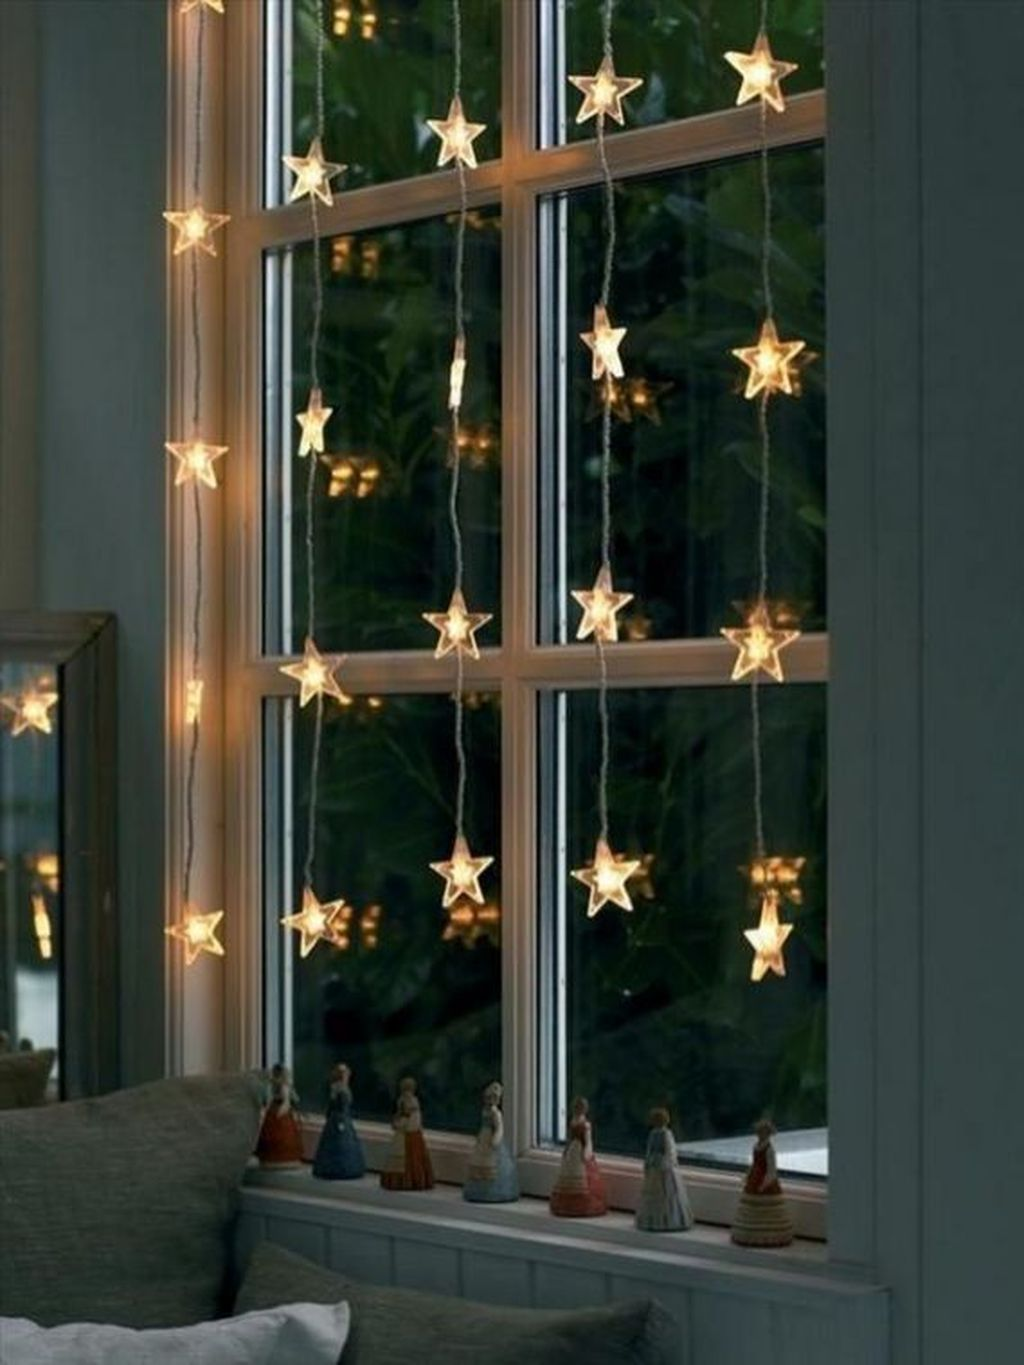 Stunning Christmas Lights Decoration Ideas In The Bedroom 34